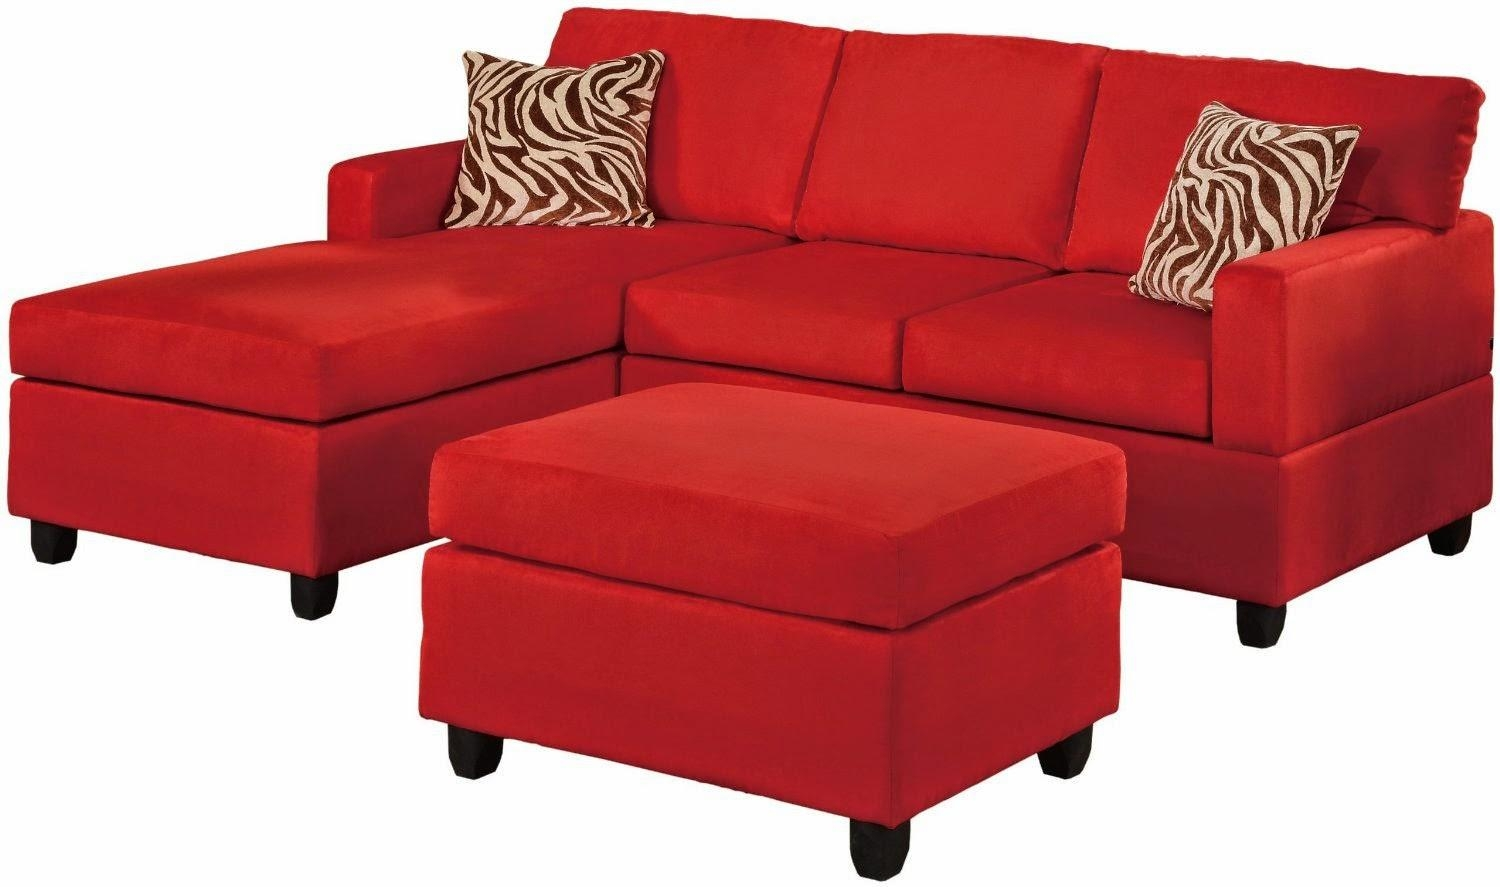 Red Sectional Sofas Cheap | Centerfieldbar In Red Sectional Sleeper Sofas (View 14 of 22)